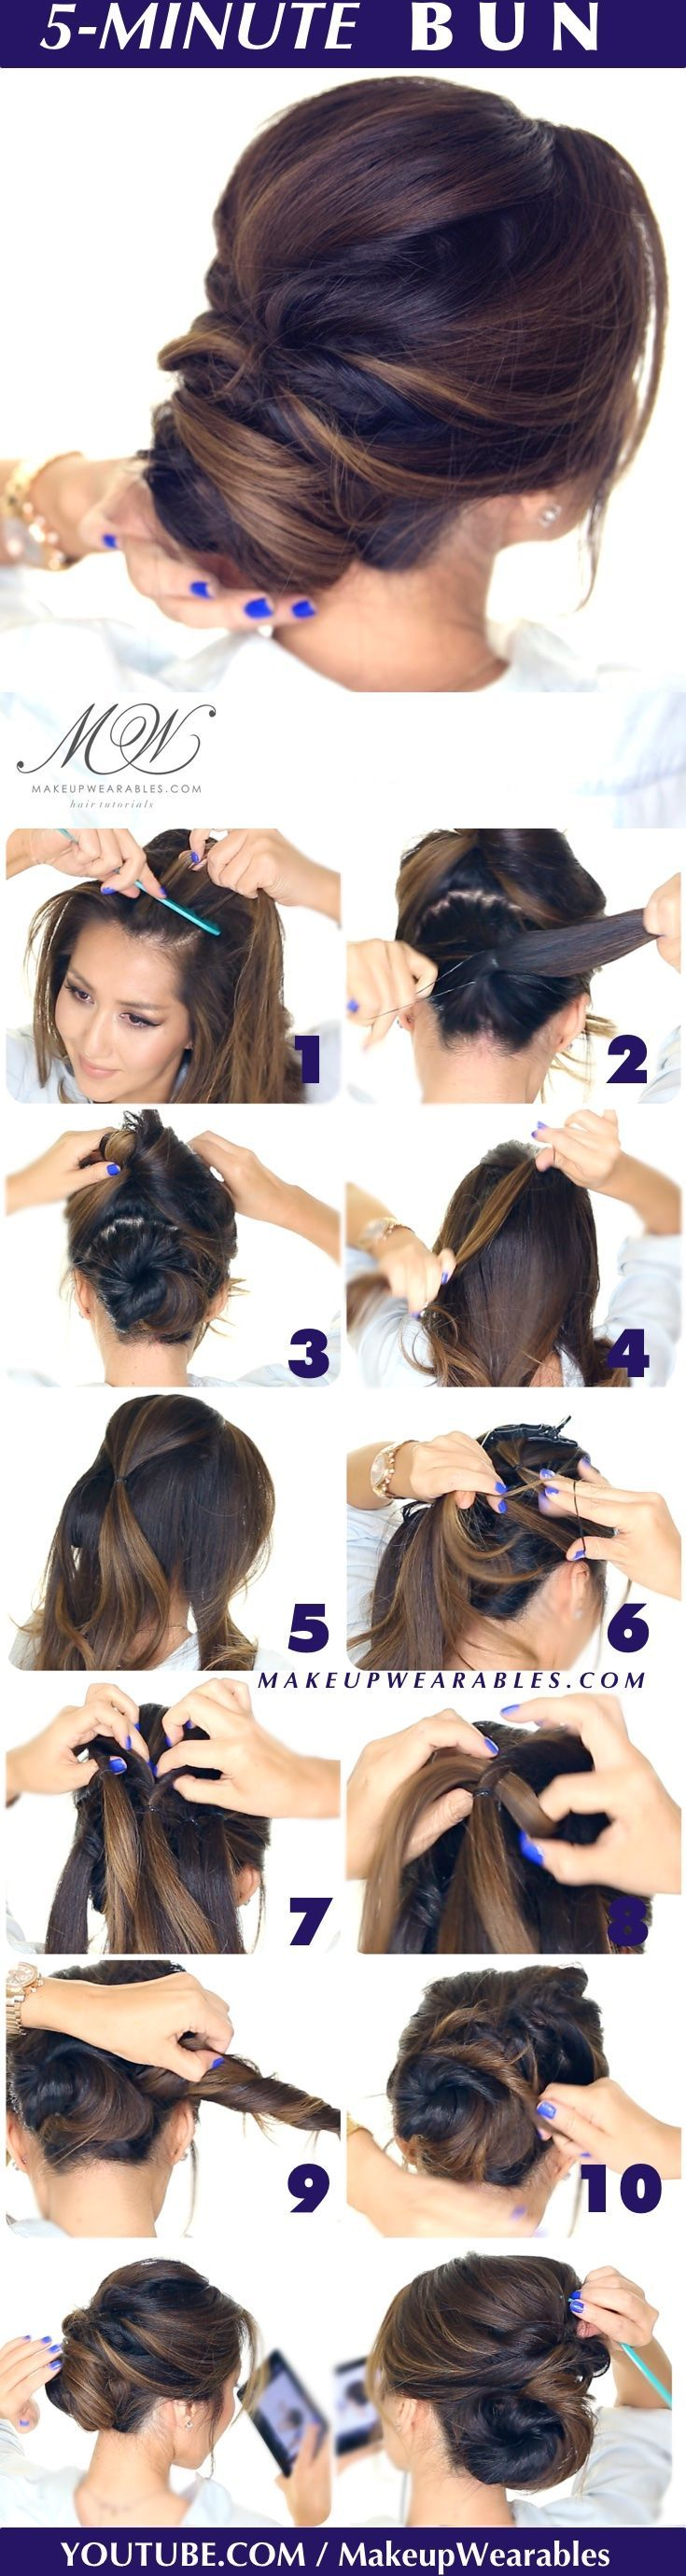 5-Minute Romantic Updo Tutorial   Elegant Easy Hairstyles